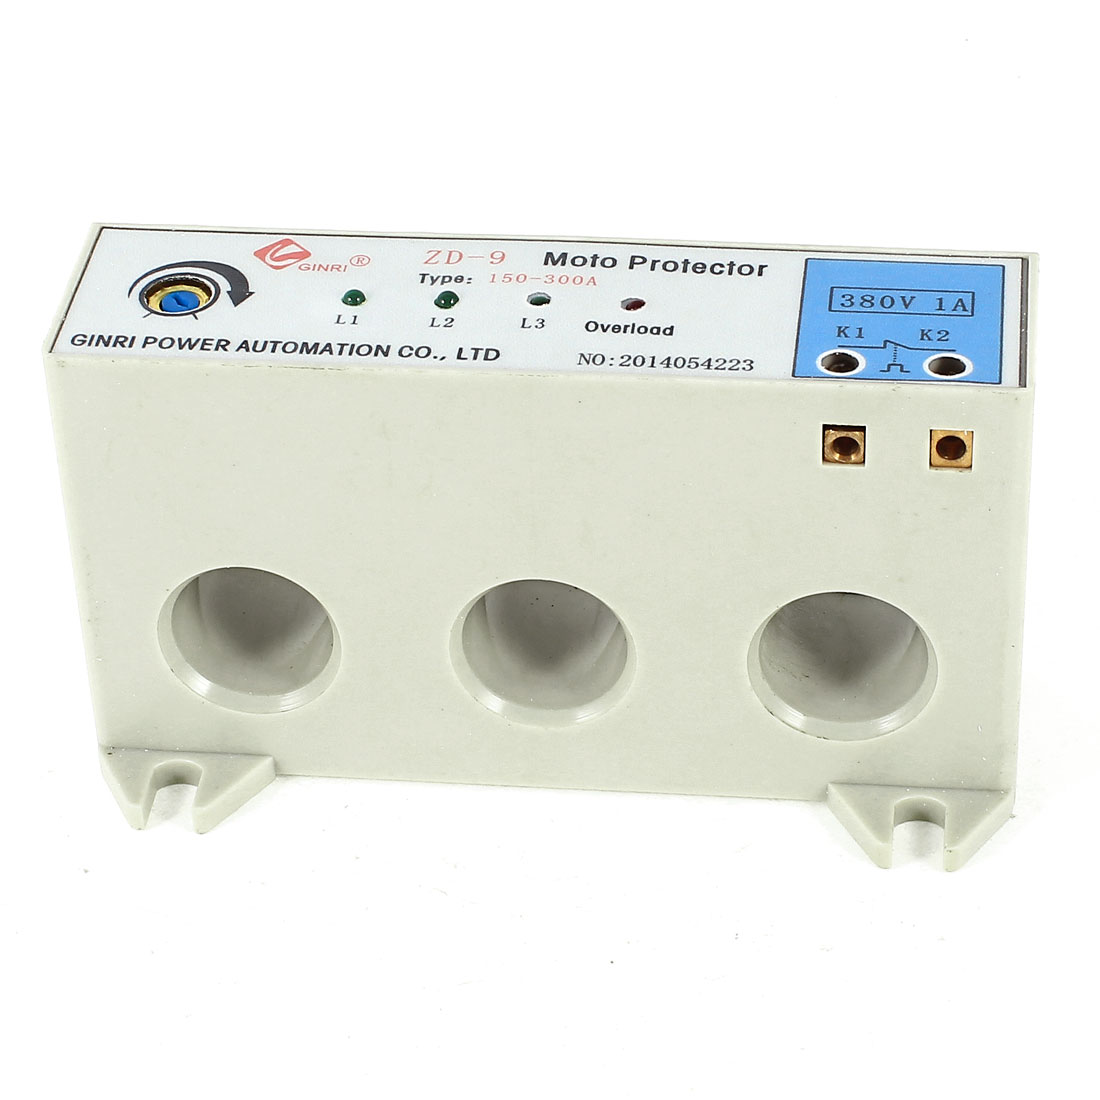 ZD-9/150-300A 3 Phase 150-300 Ampere Adjustable Current Breaker Motor Circuit Protector Non Power